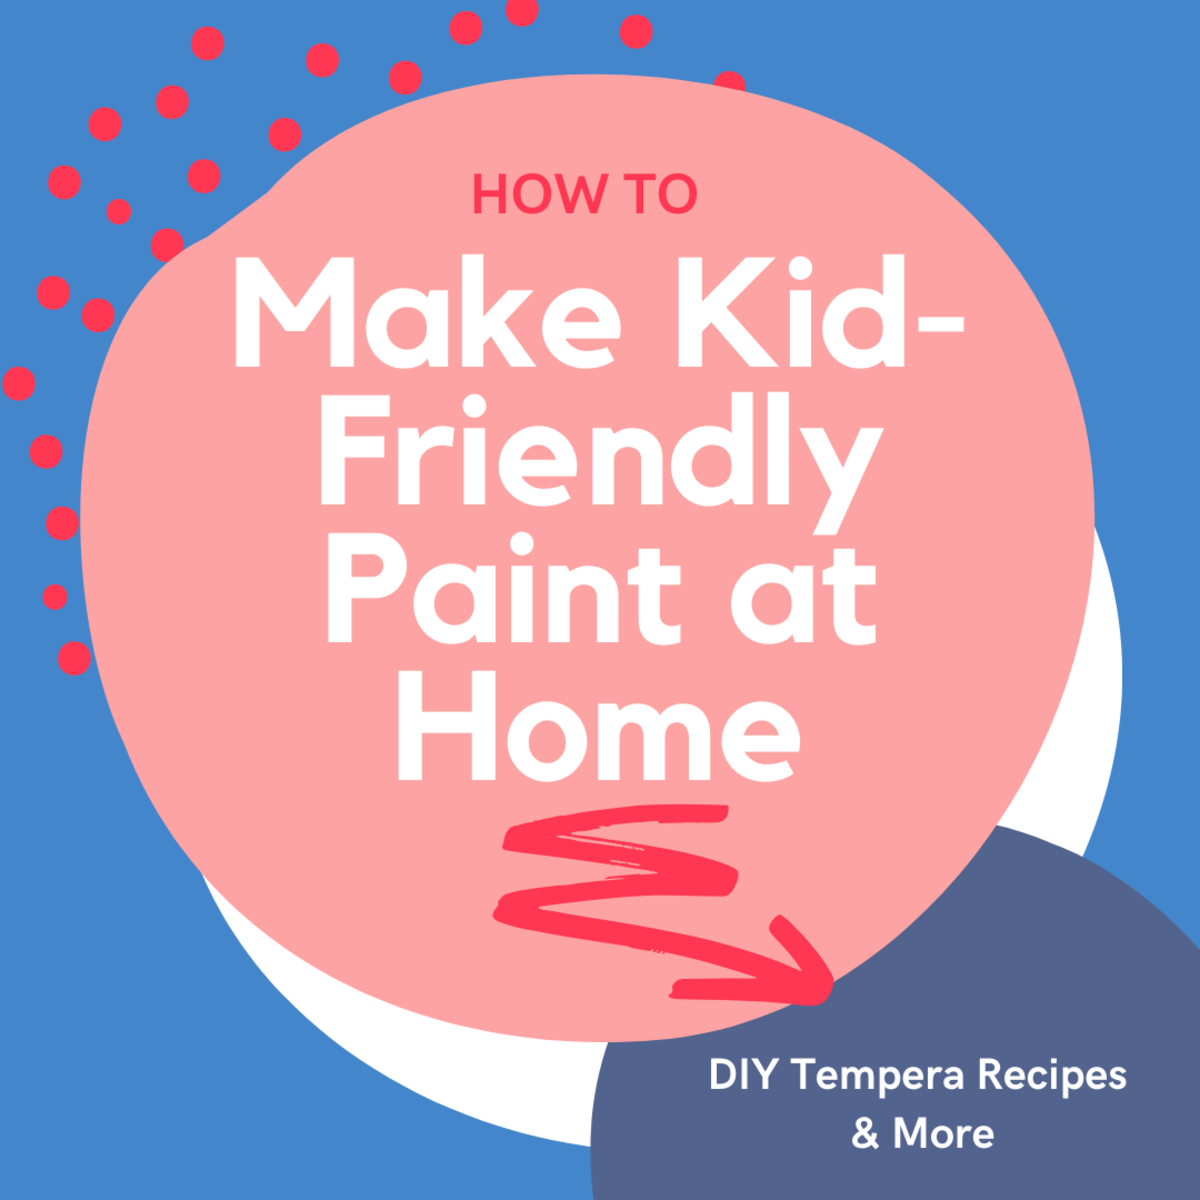 Use these DIY recipes to get creative with your children.